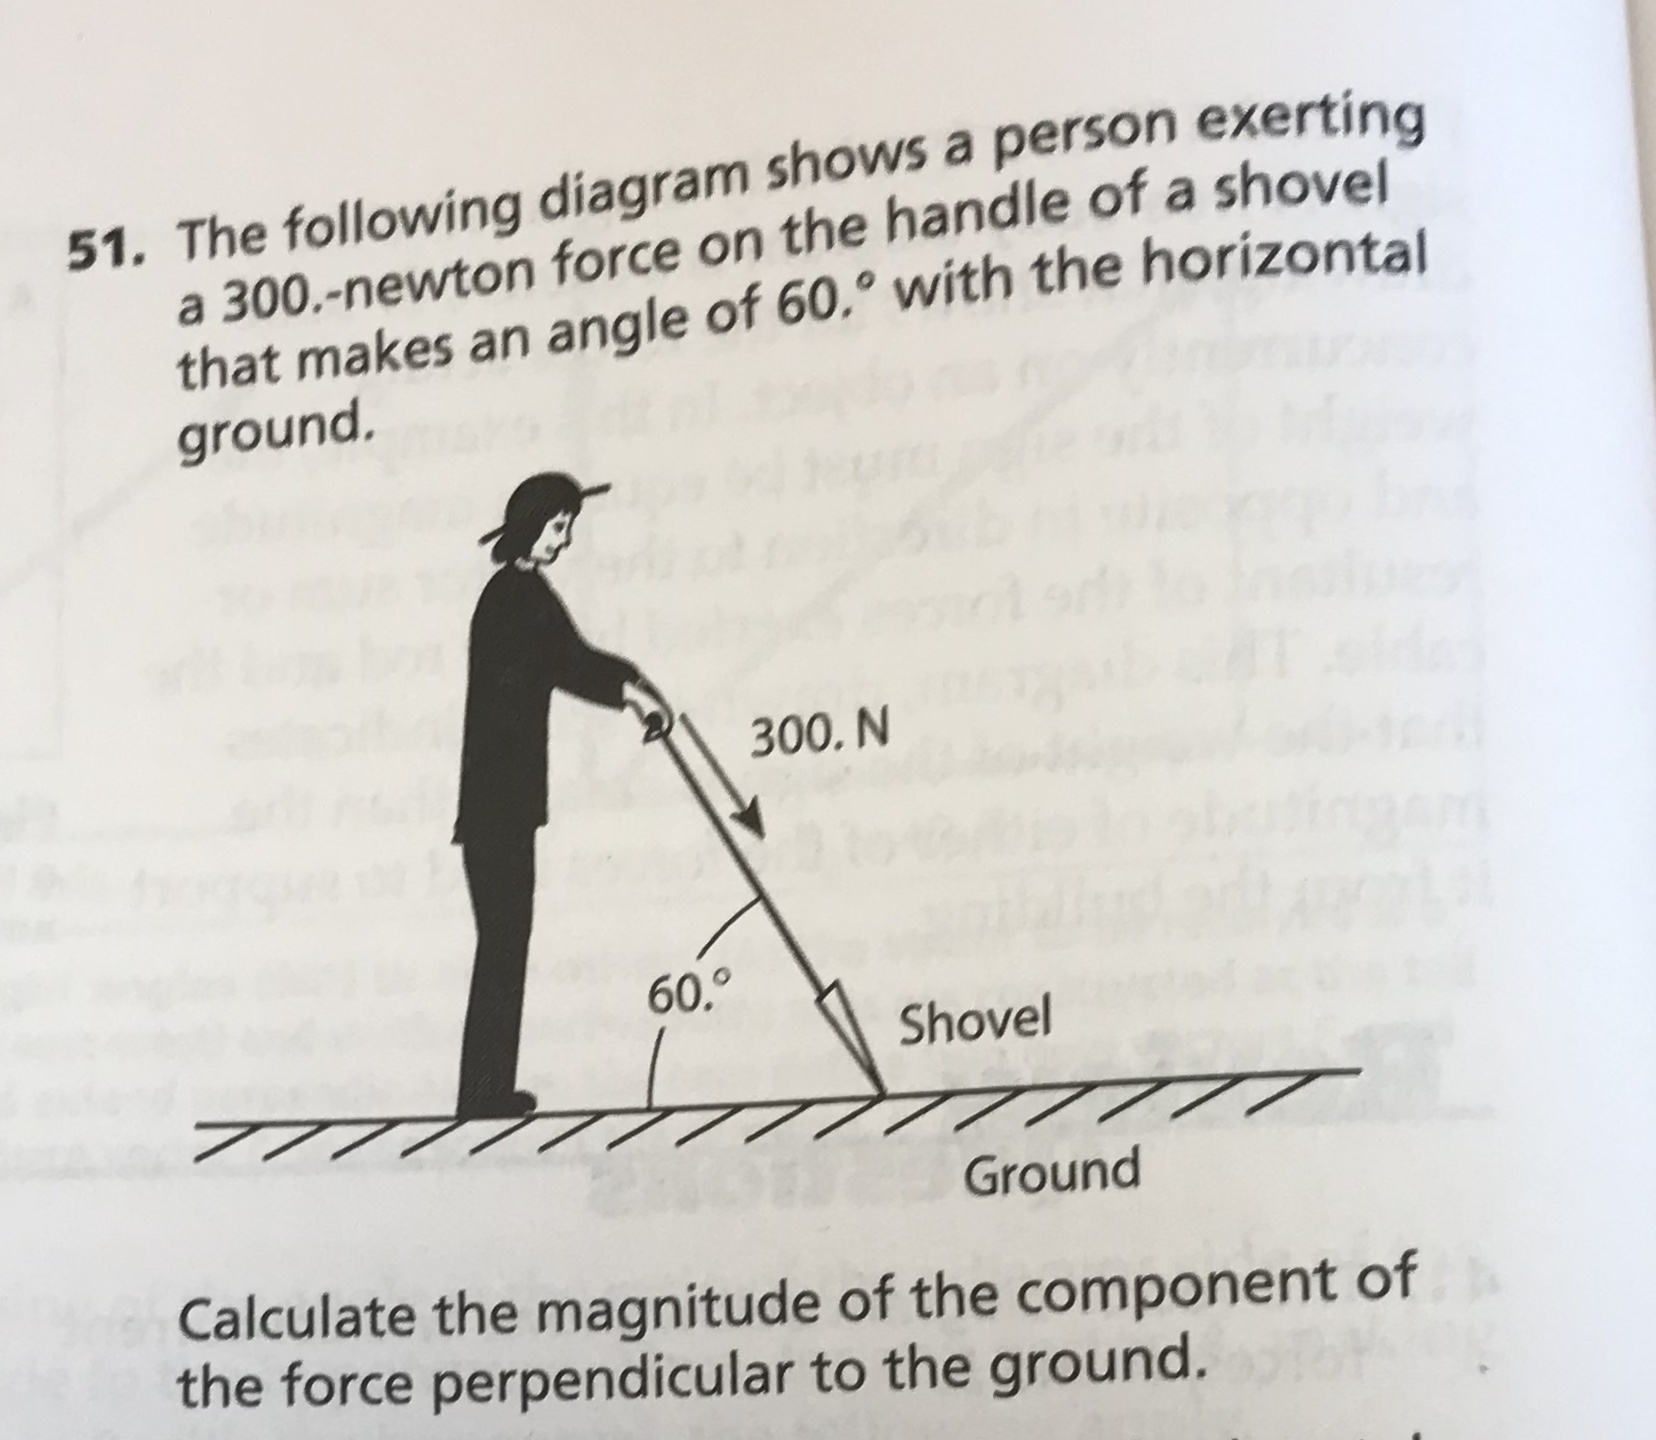 51. The following diagram shows a person exerting a 300.-newton force on the handle of a shovel that makes an angle of 60.° with the horizontal ground. 300. N 60,0 Shovel 777 Ground Calculate the magnitude of the component of the force perpendicular to the ground.